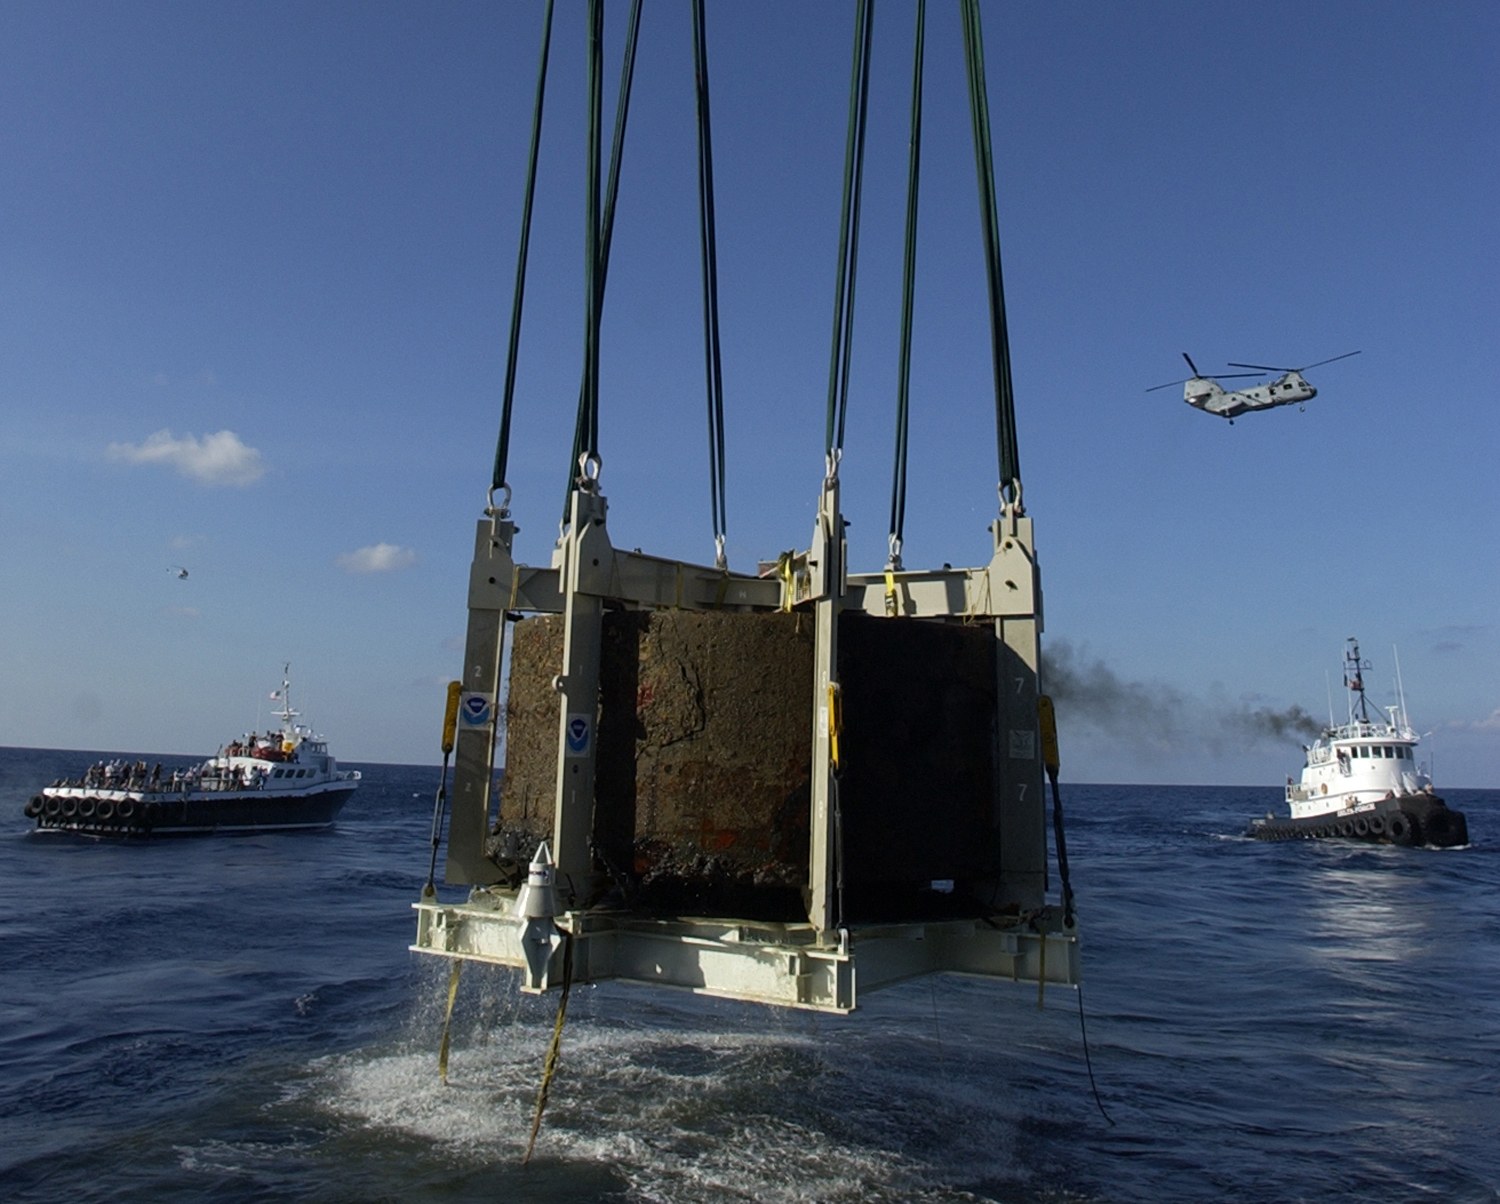 The <em>Monitor</em>'s turret recovered on August 5, 2002, courtesy of NOAA